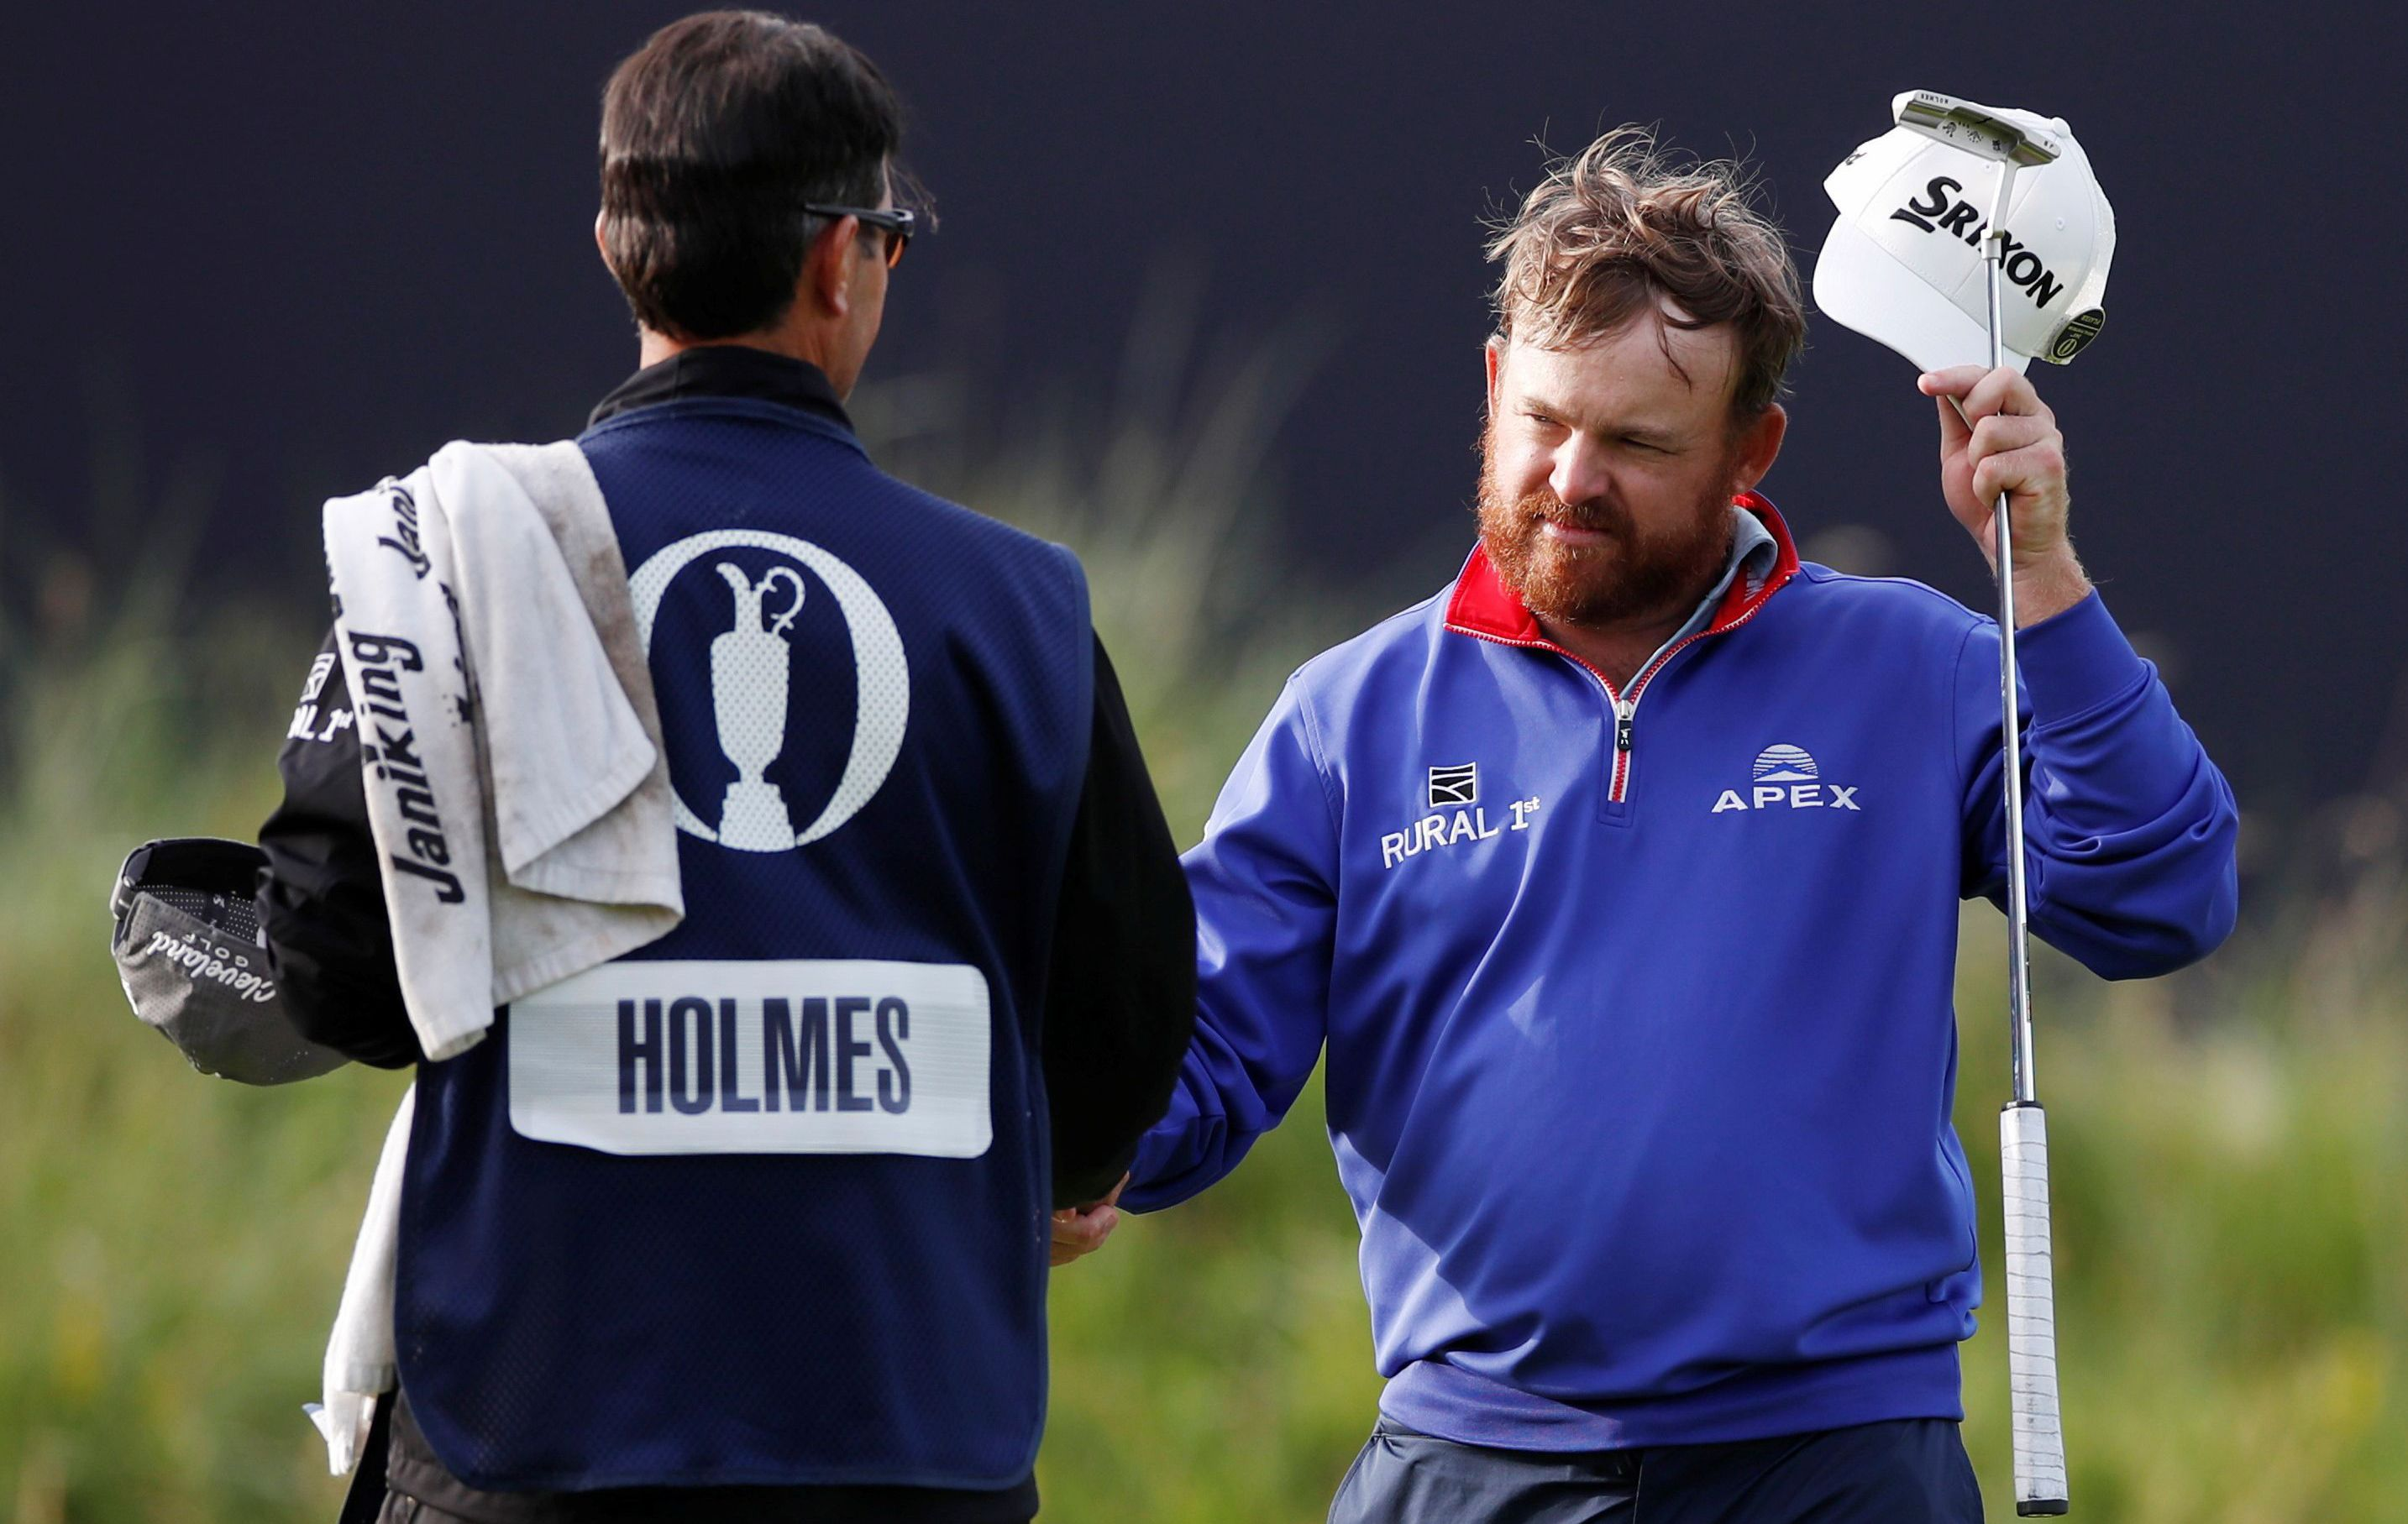 Golf - Tournois majeurs - British Open : Holmes leader, Langasque placé, McIlroy et Woods plongent